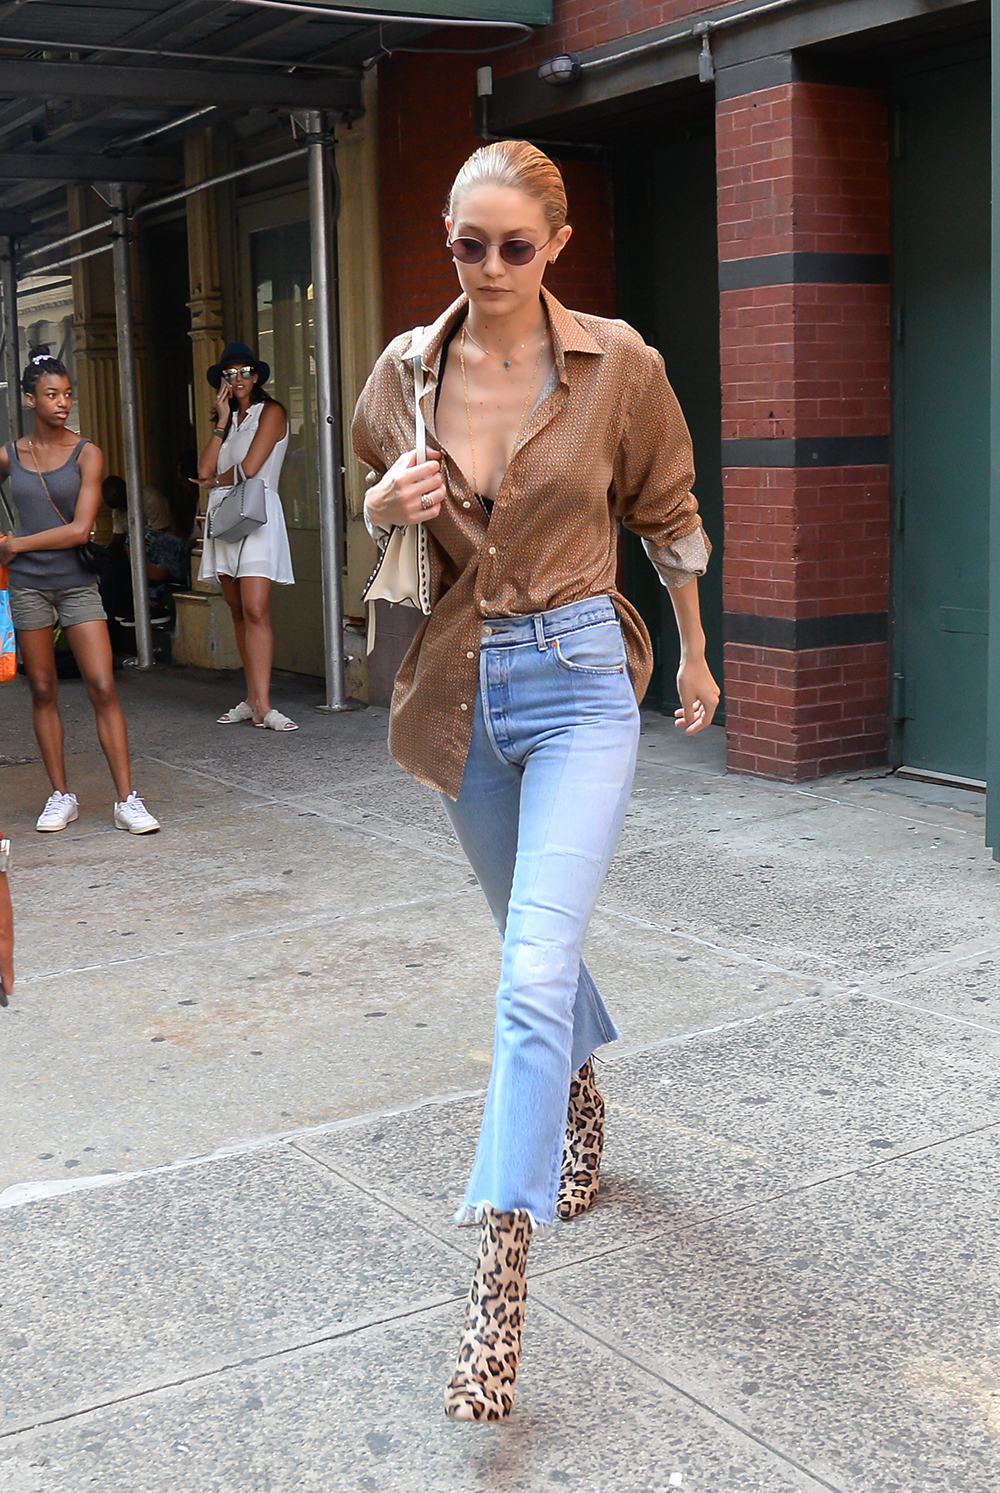 NEW YORK, NY - JULY 18:  Model Gigi Hadid  is seen walking in Soho on July 18, 2017 in New York City.  (Photo by Raymond Hall/GC Images)